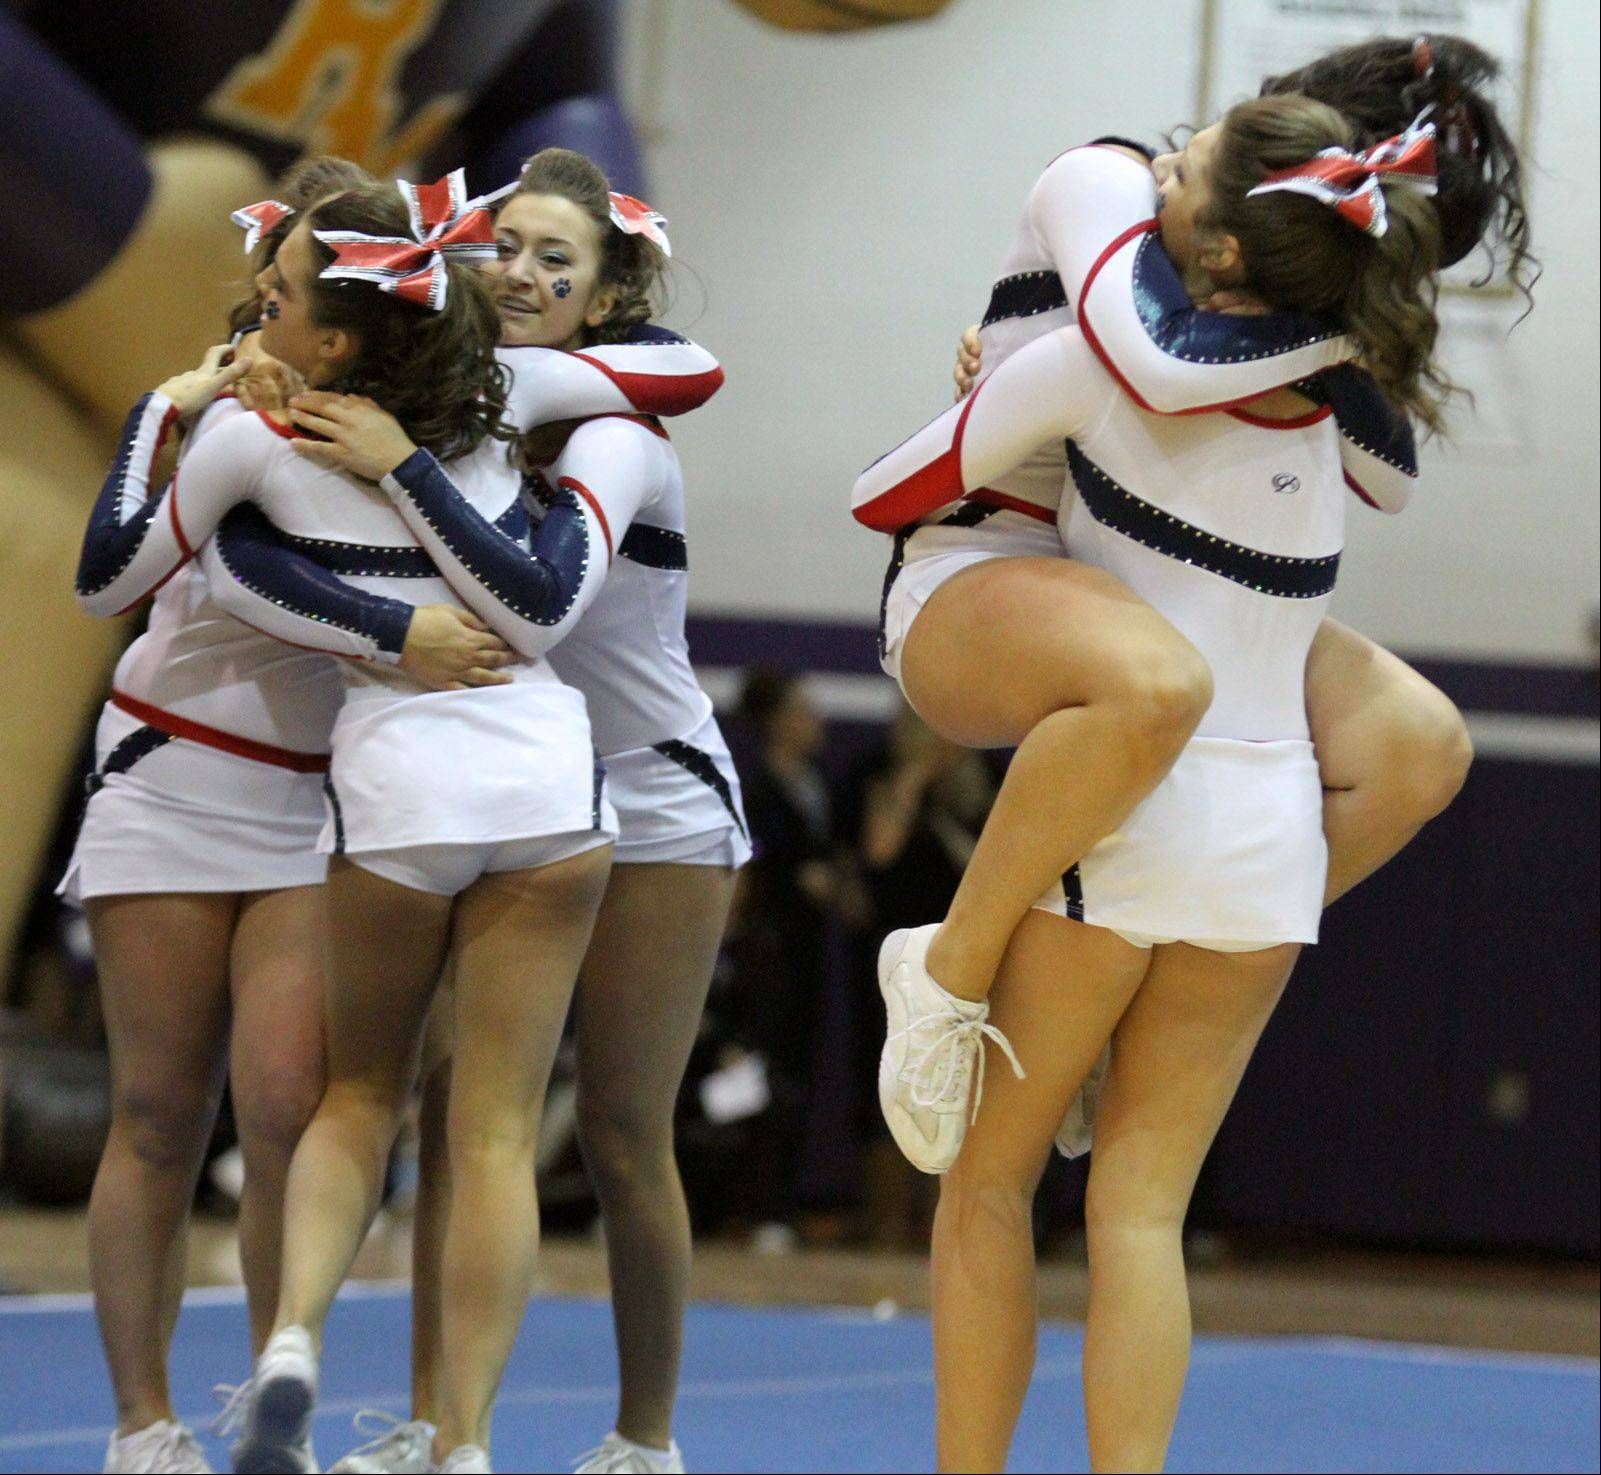 Conant High School celebrates their performance at the IHSA competitive cheerleading sectionals in Rolling Meadows on Saturday.